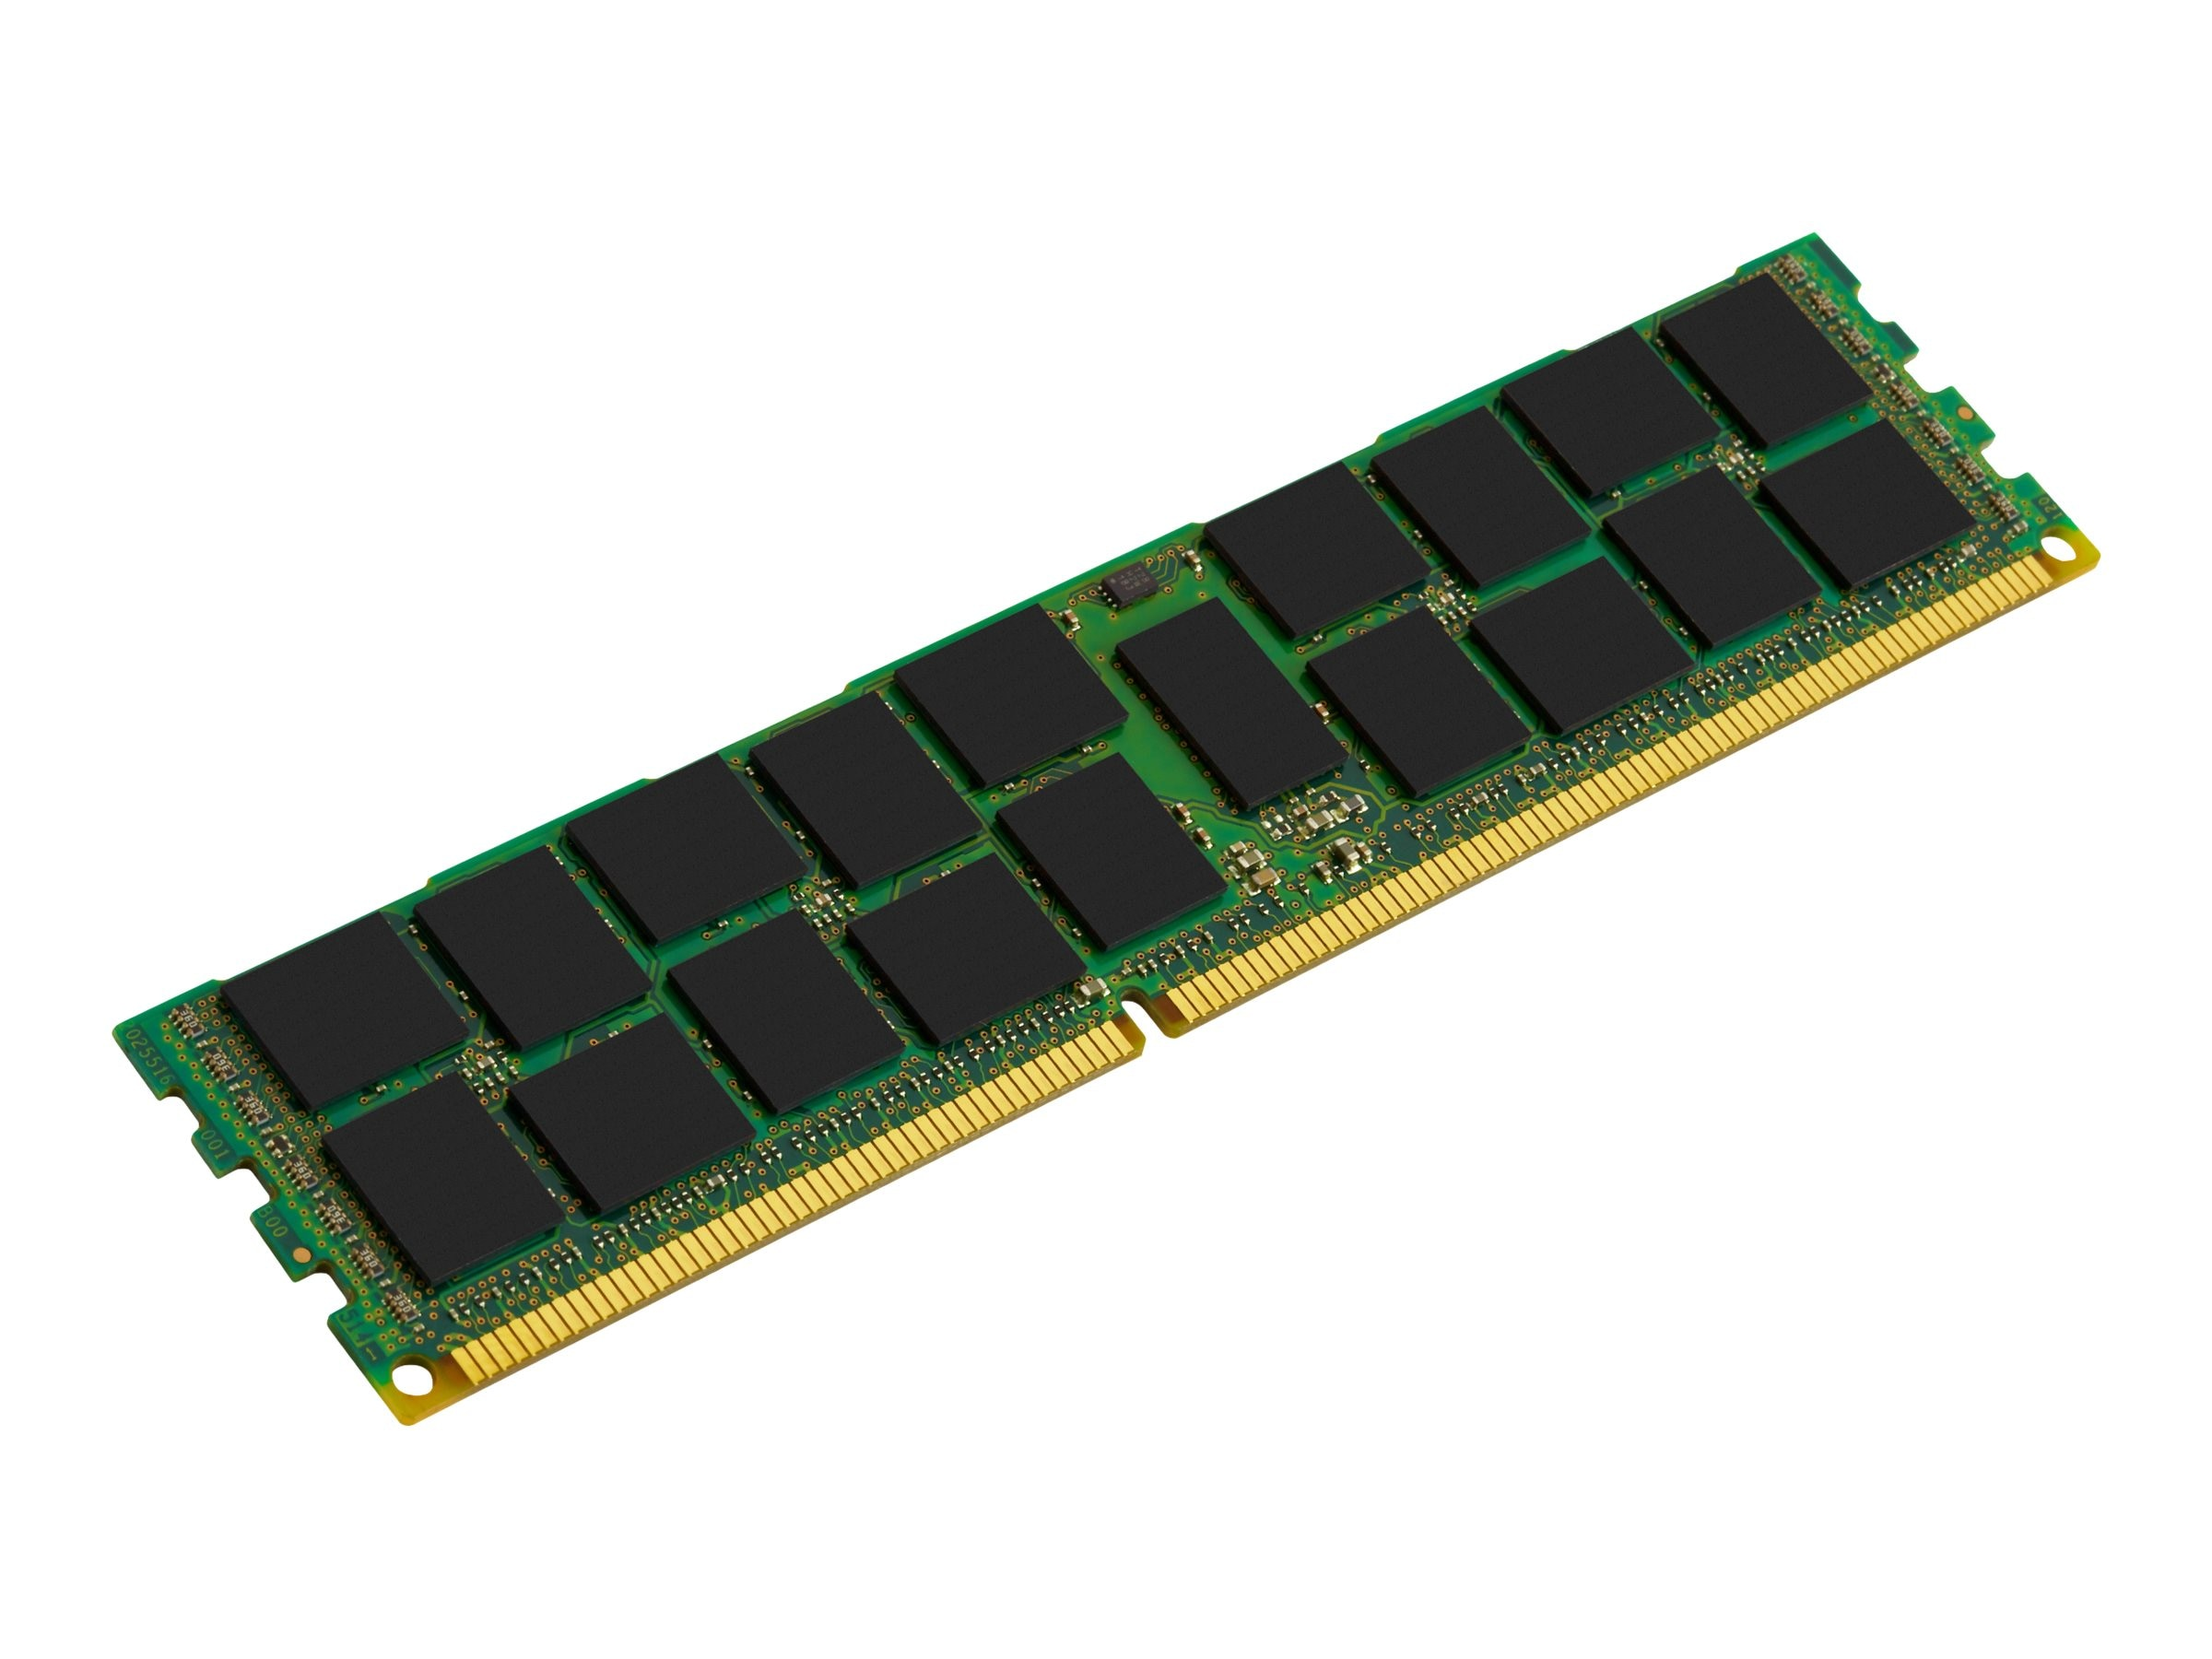 Kingston 8GB PC3-12800 DDR3 SDRAM Upgrade Module